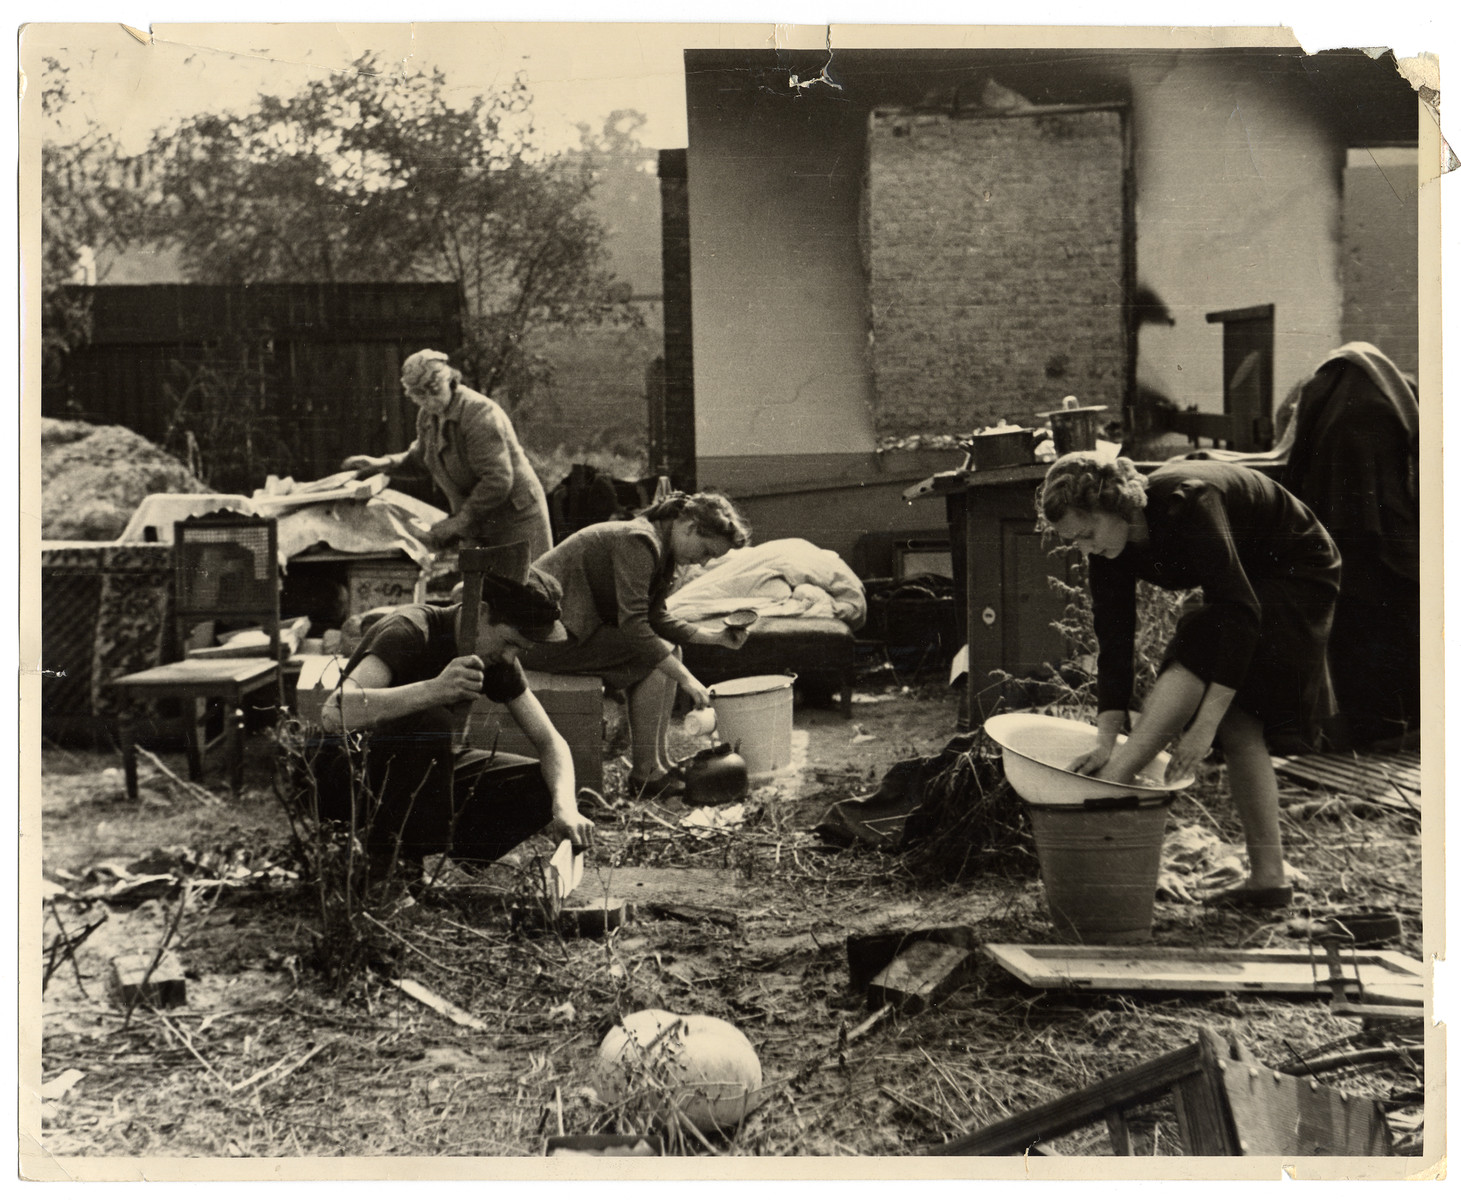 A Polish family performs their daily chores amidst the remnants of their household furnishings that they have reassembled outside the charred ruins of their home in Warsaw.